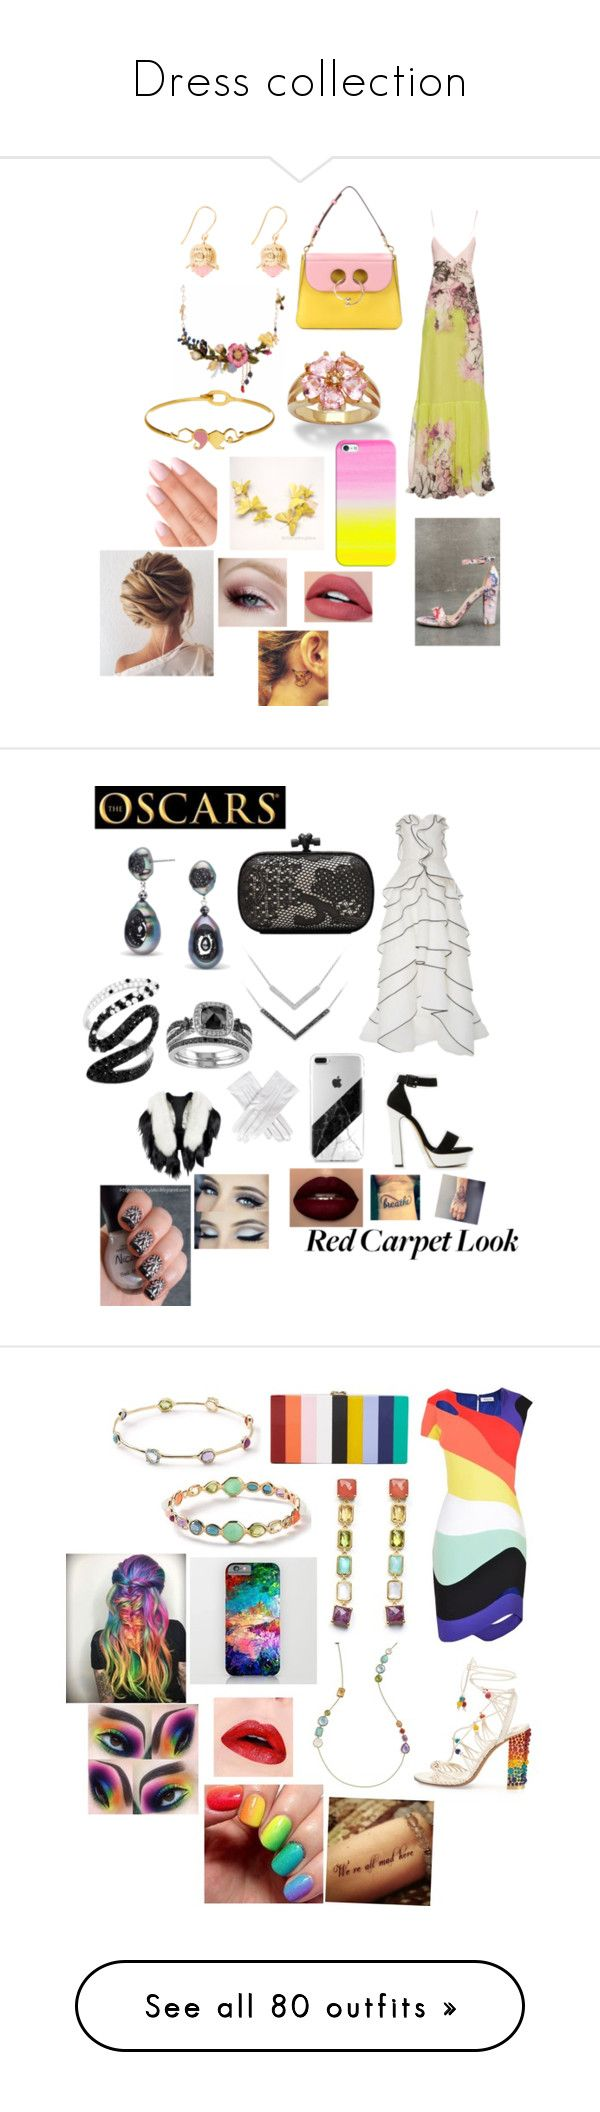 """Dress collection"" by shirowland ❤ liked on Polyvore featuring Roberto Cavalli, Bamboo, J.W. Anderson, Aurélie Bidermann, Les Néréides, Palm Beach Jewelry, LeiVanKash, Casetify, Oscar de la Renta and Bottega Veneta"